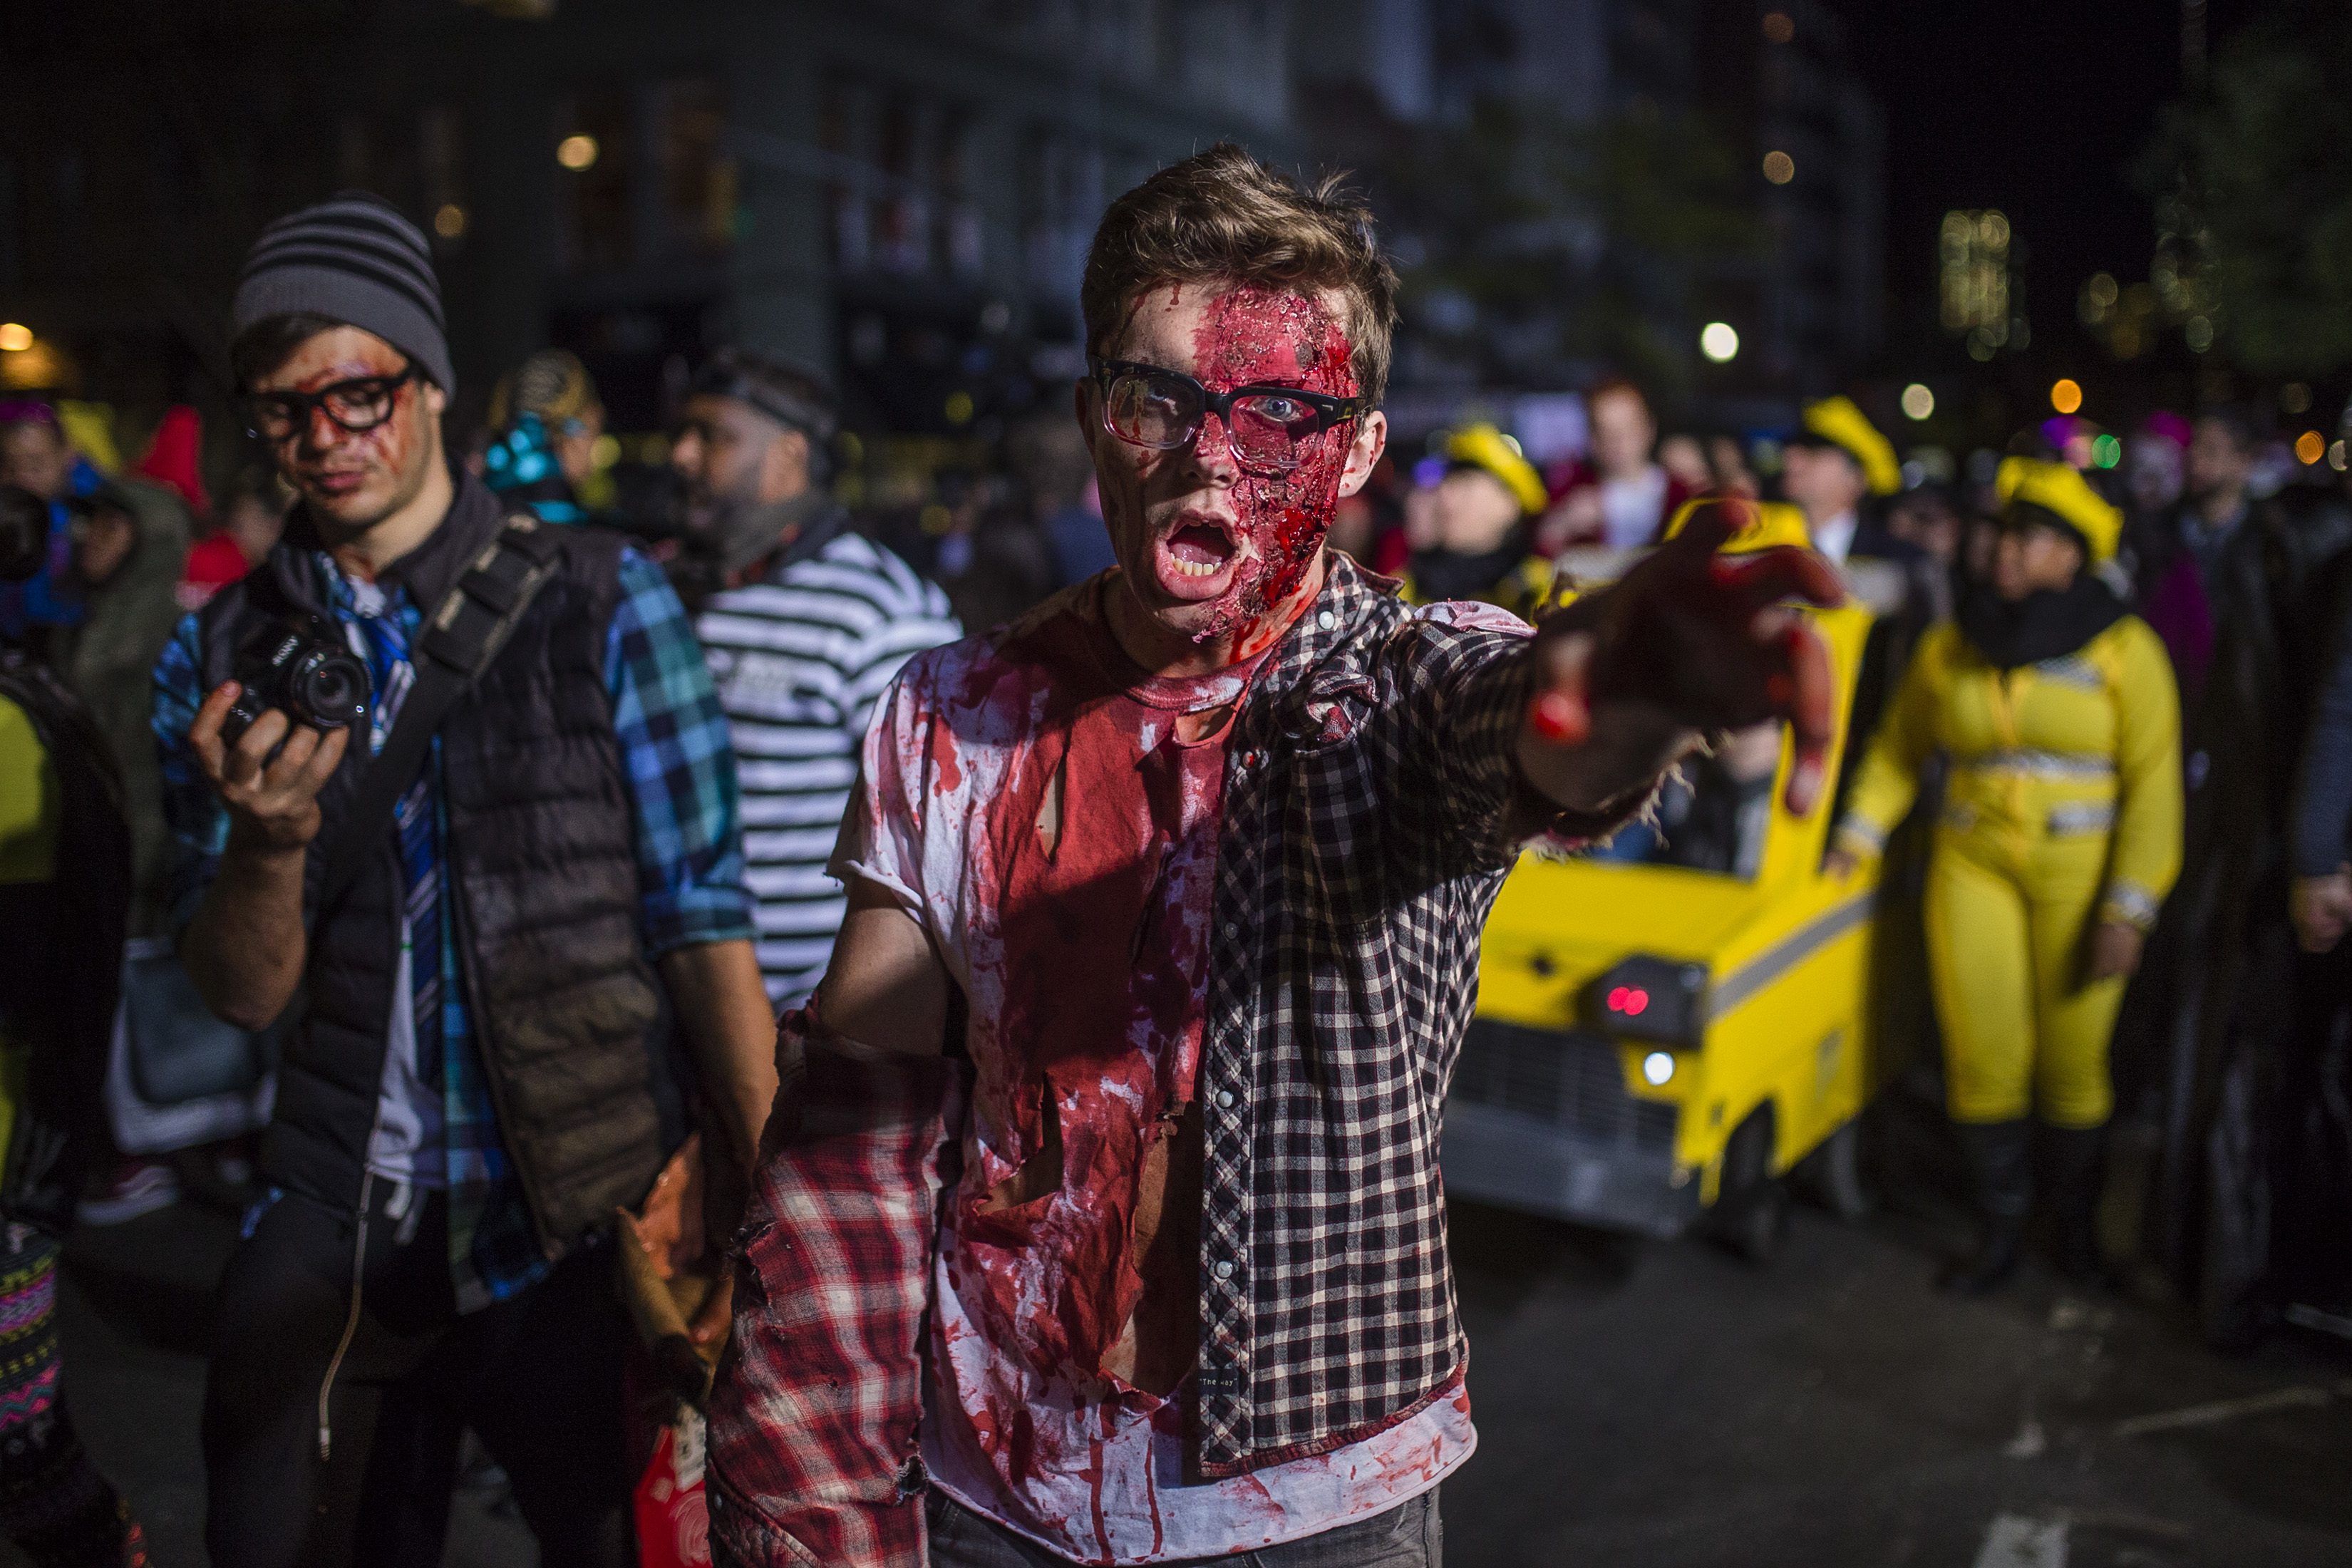 """<div class=""""meta image-caption""""><div class=""""origin-logo origin-image none""""><span>none</span></div><span class=""""caption-text"""">A reveler performs as he marches during the Greenwich Village Halloween Parade in New York, Monday, Oct. 31, 2016. (AP Photo/Andres Kudacki)</span></div>"""